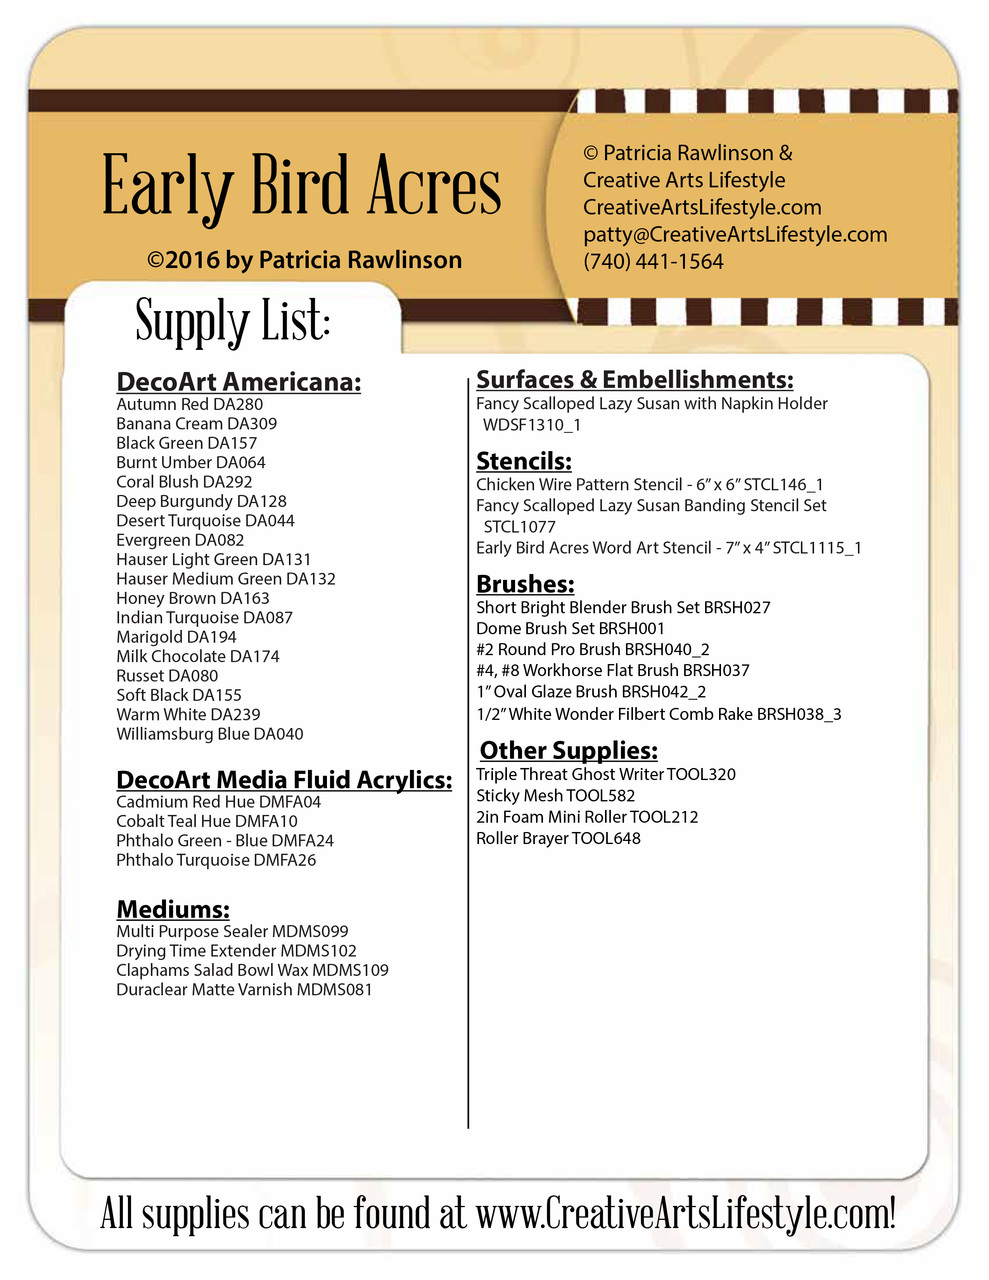 Early Bird Acres Lazy Susan Packet by Patricia Rawlinson